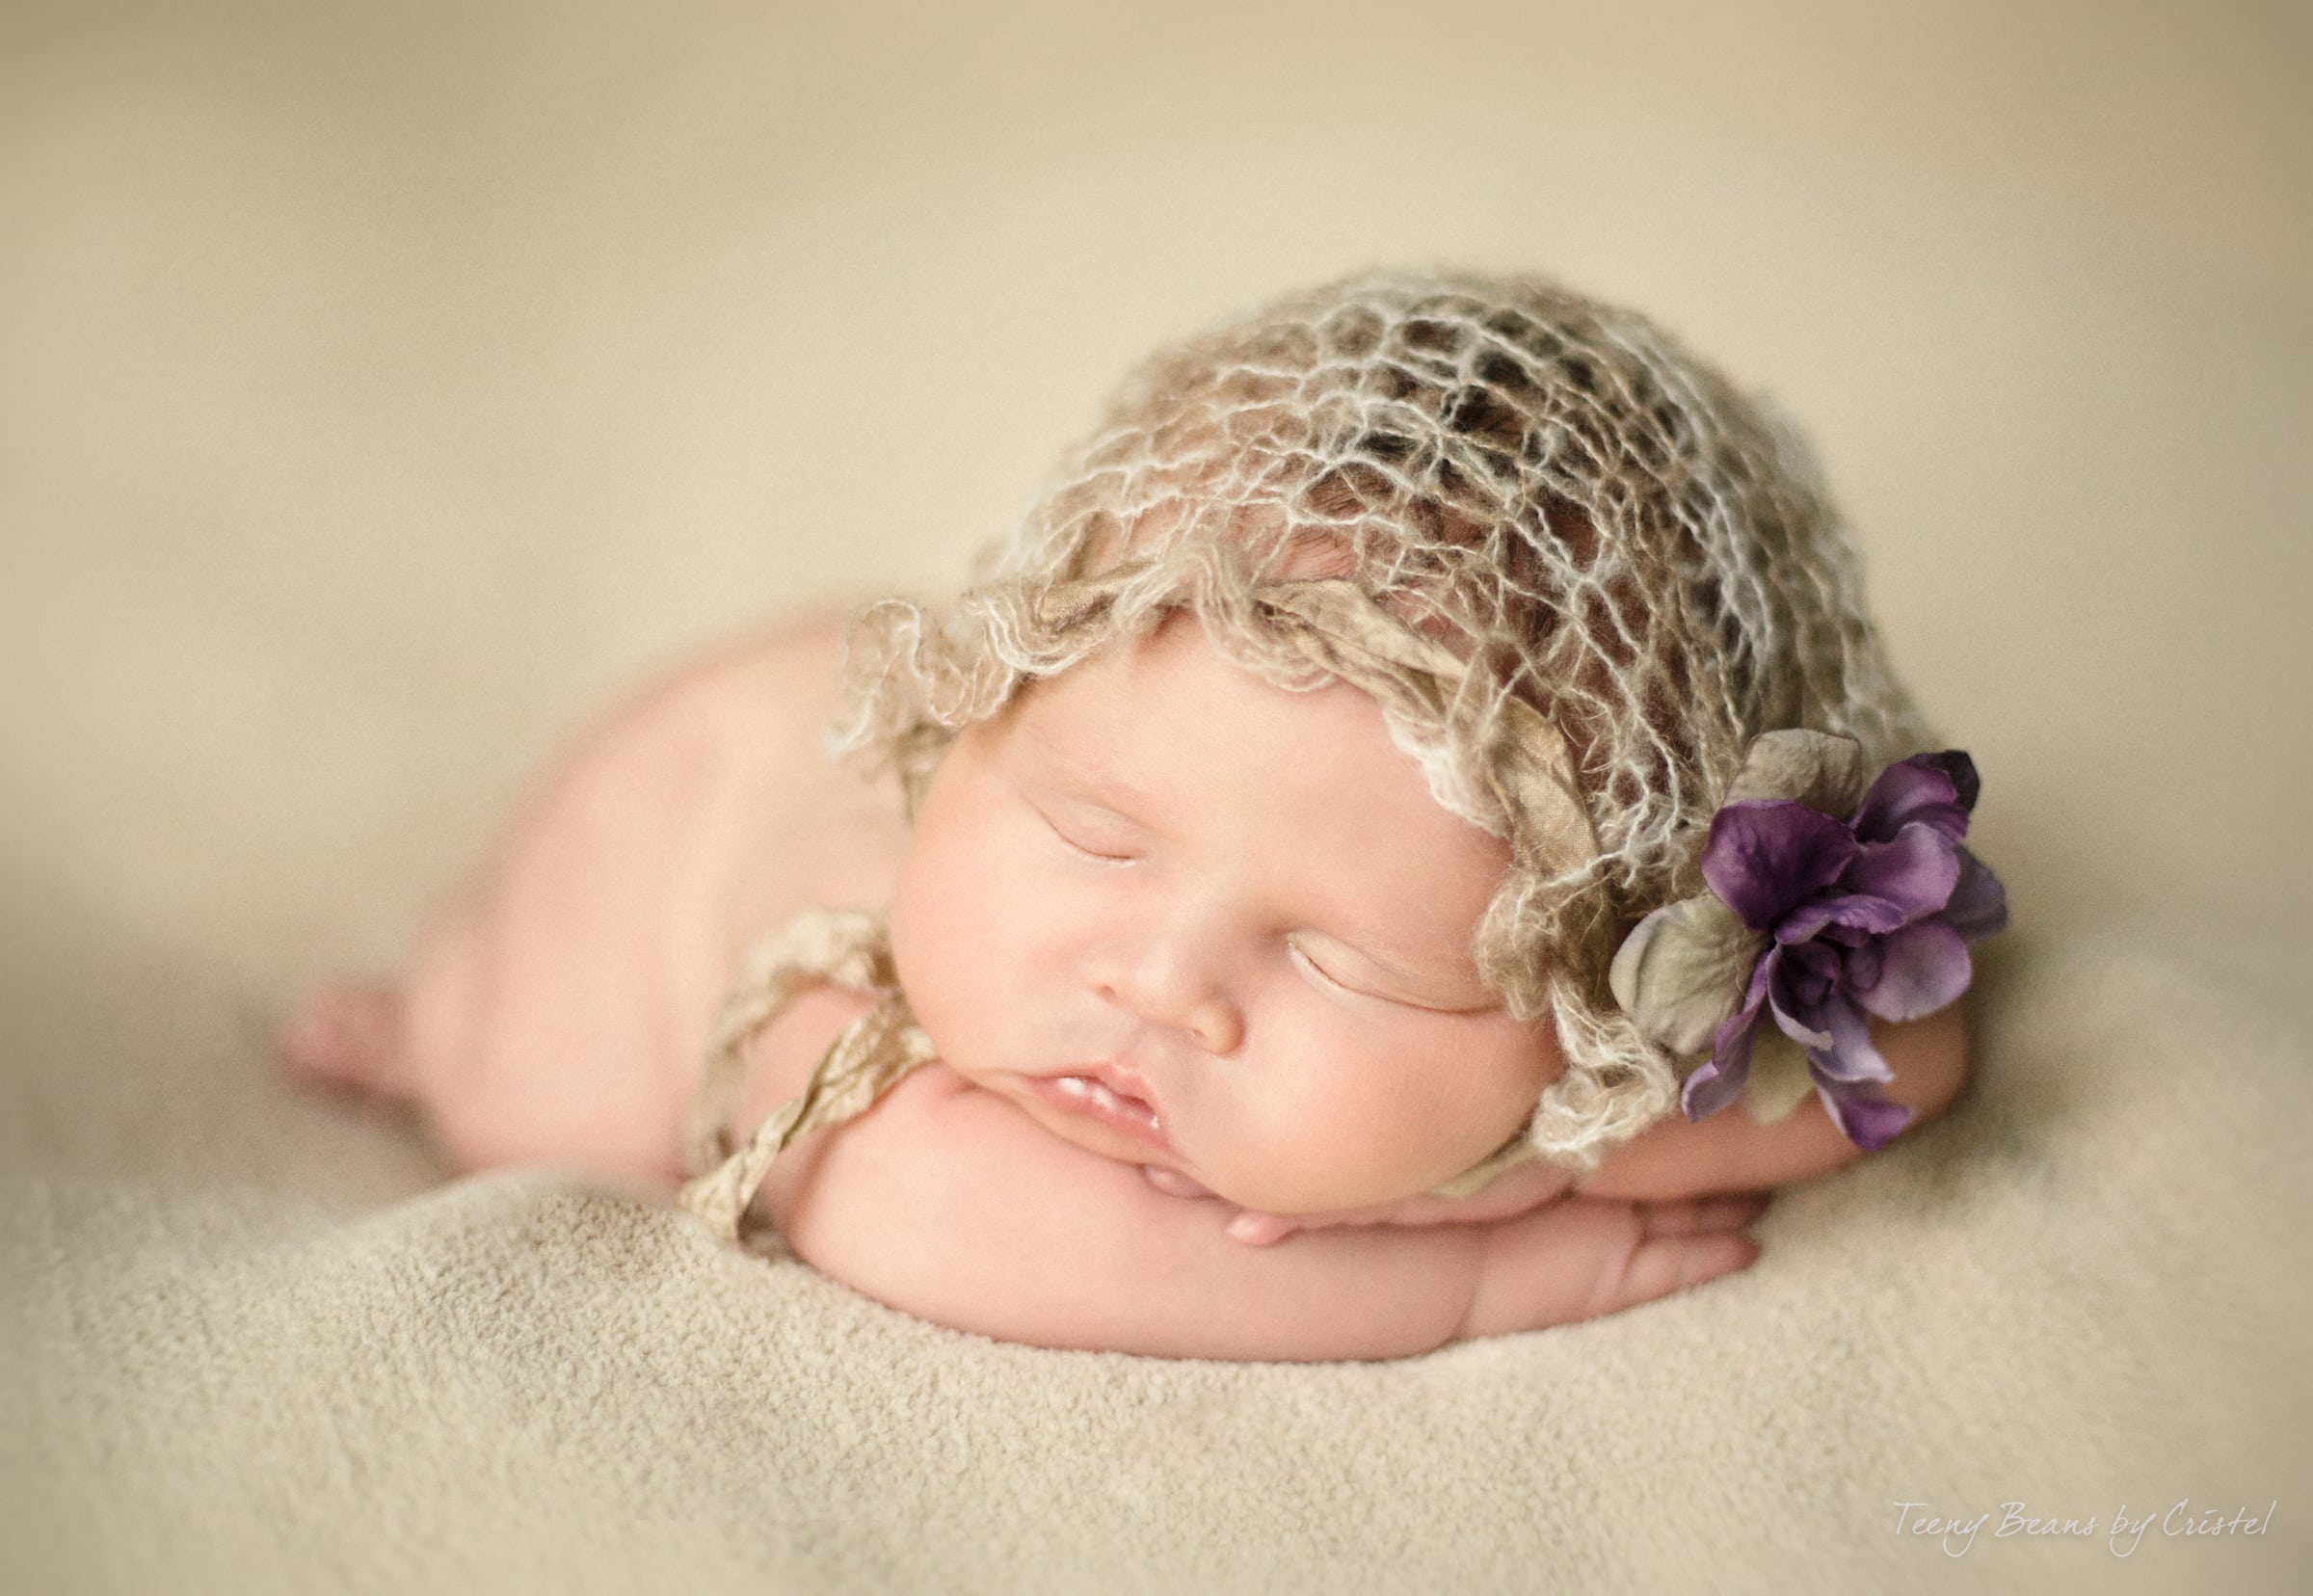 IsabellaLow-19 raleigh newborn photographer - baby isabella